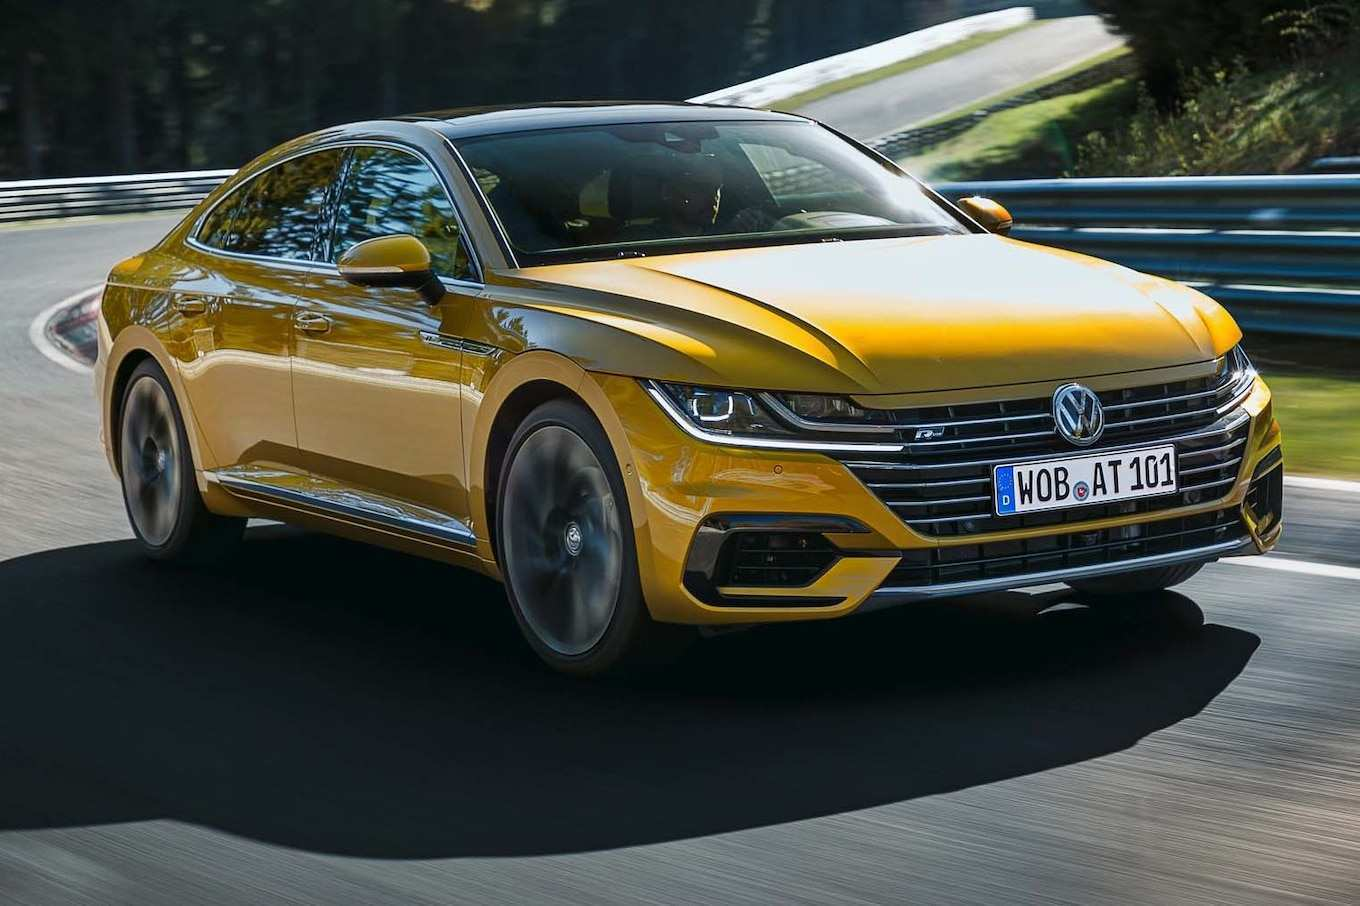 66 Gallery of 2019 Volkswagen Arteon Specs Exterior and Interior for 2019 Volkswagen Arteon Specs